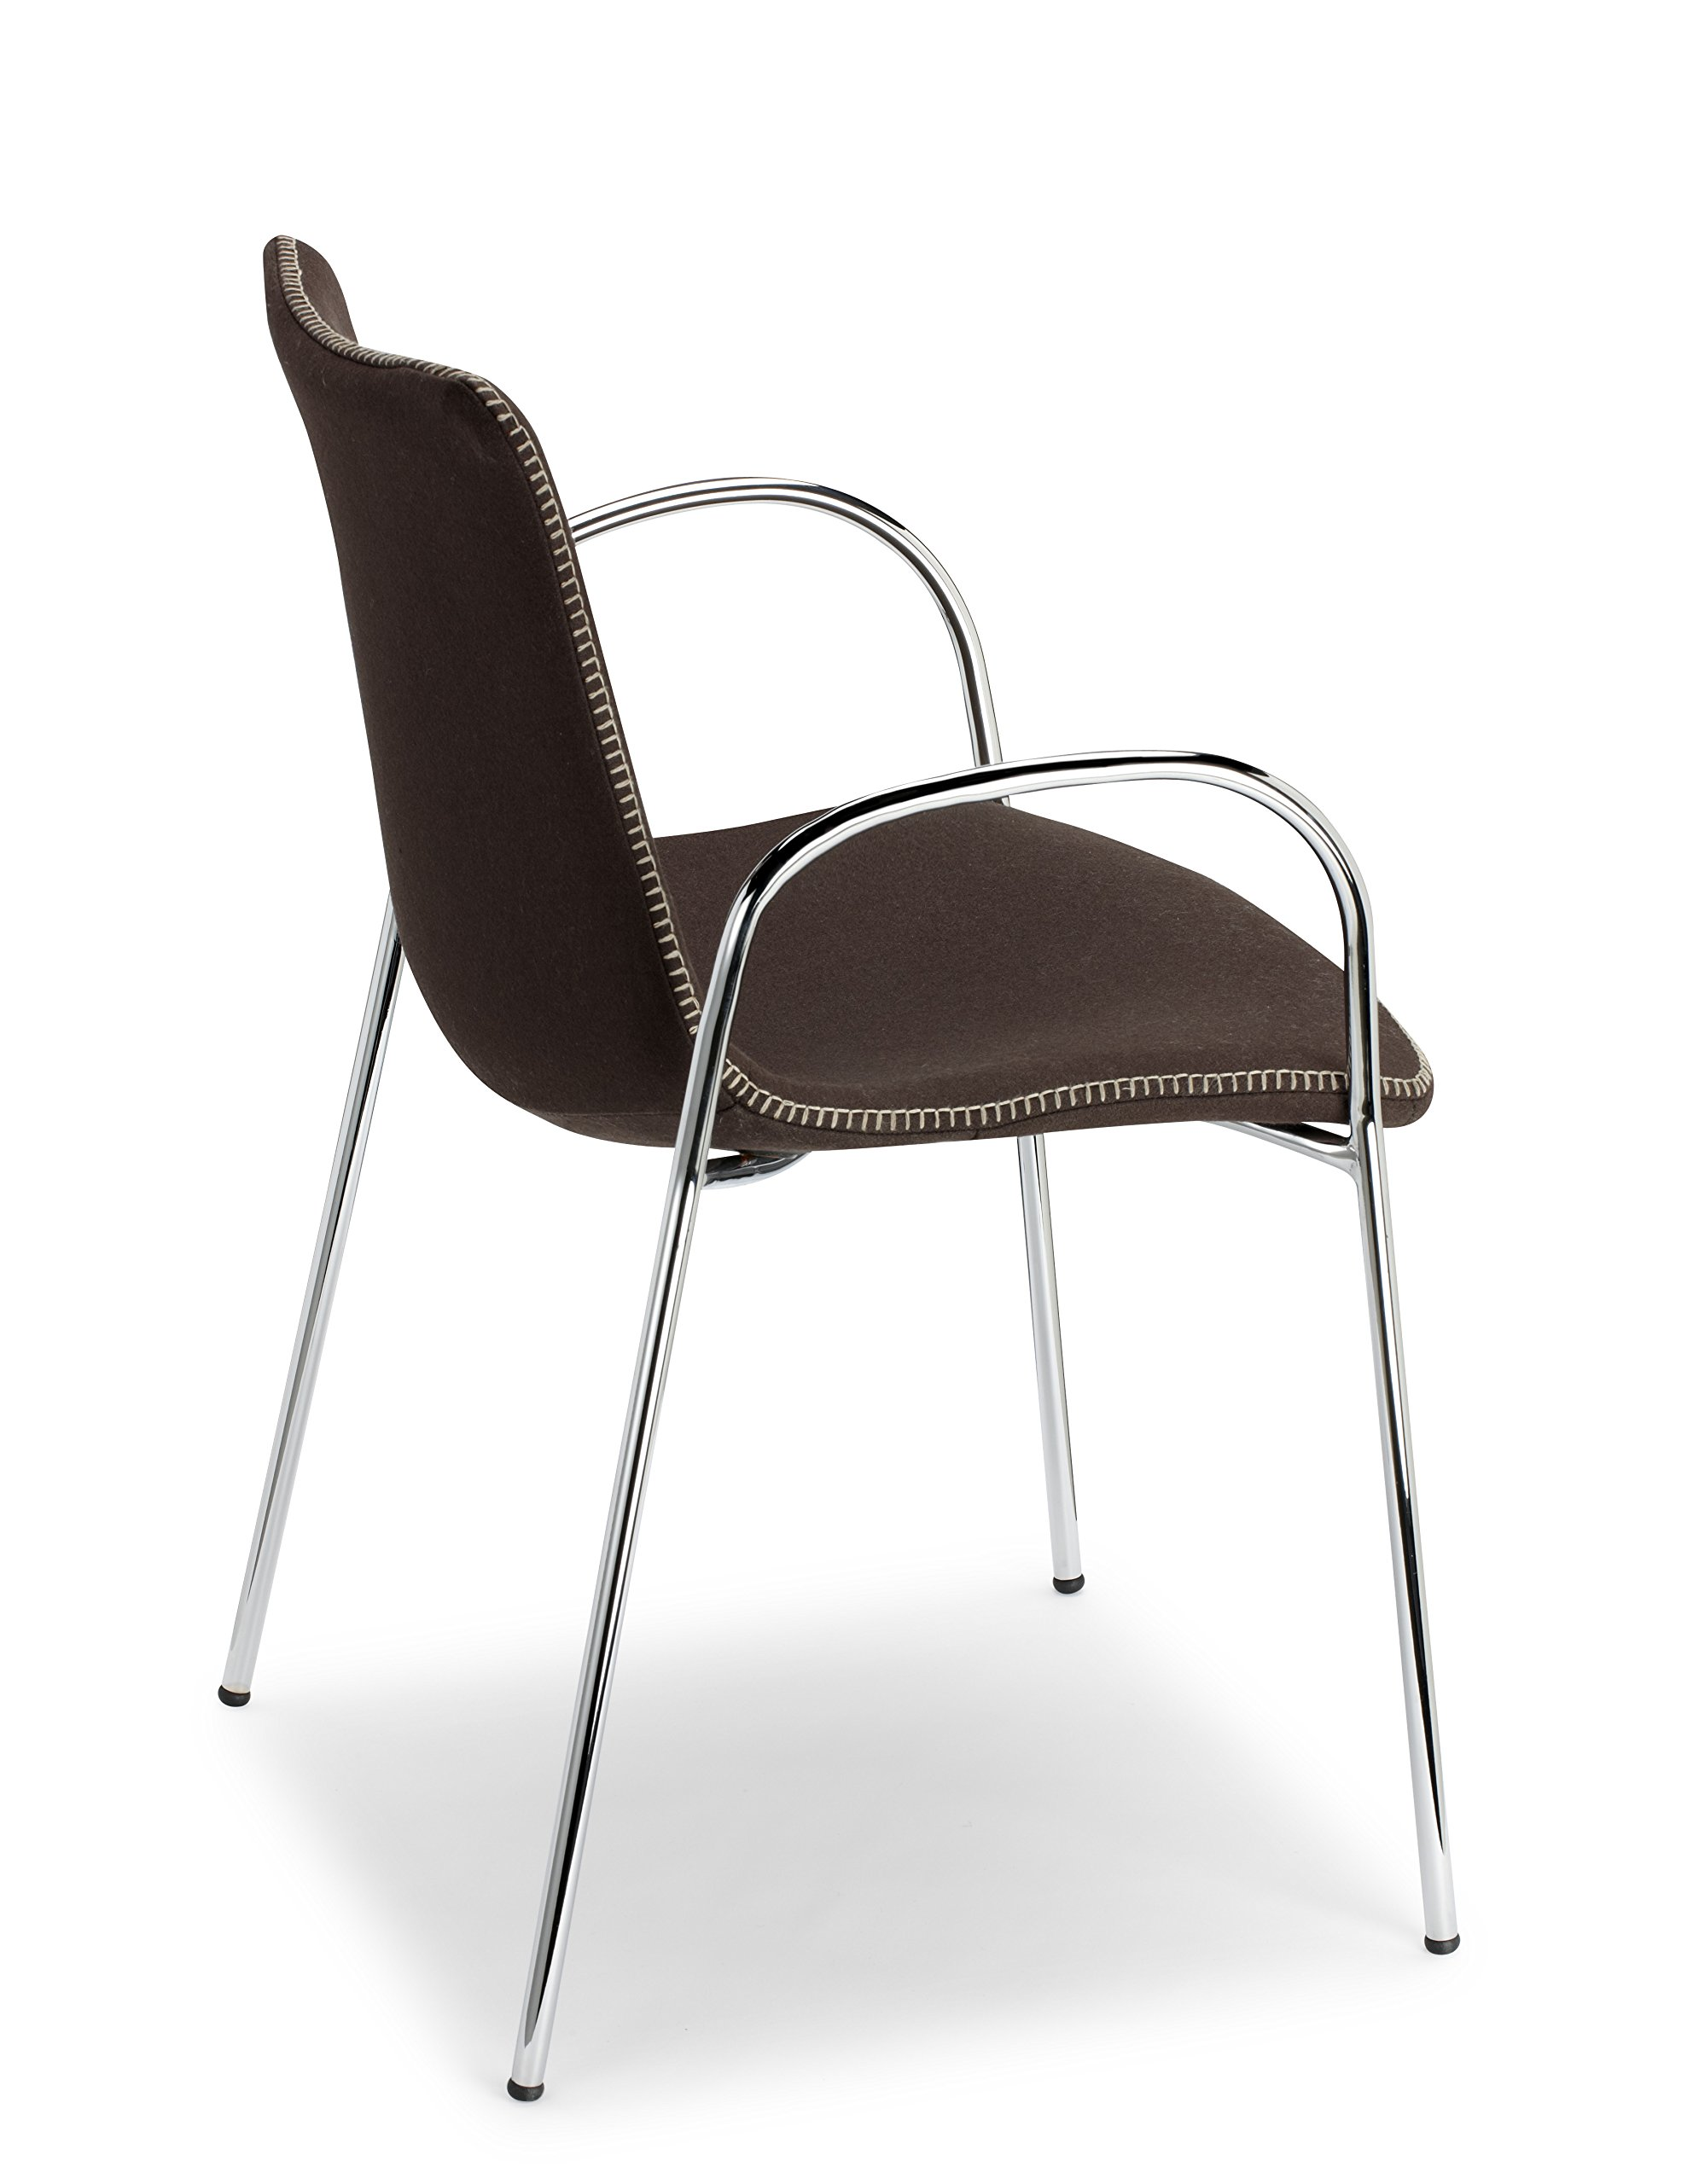 Parada One Design Zebra Pop Upholstered Dining Chair with Armrests, Polycarbonate Core and Chrome Legs, Brown Wool,Pack of 2 - Main body: upholstered polycarbonate core, Frame: 16-millimeter chrome-plated tubular steel- 4-legs, with armrest Wool upholstered Suitable for indoor use only - kitchen-dining-room-furniture, kitchen-dining-room, kitchen-dining-room-chairs - 81curFolzJL -